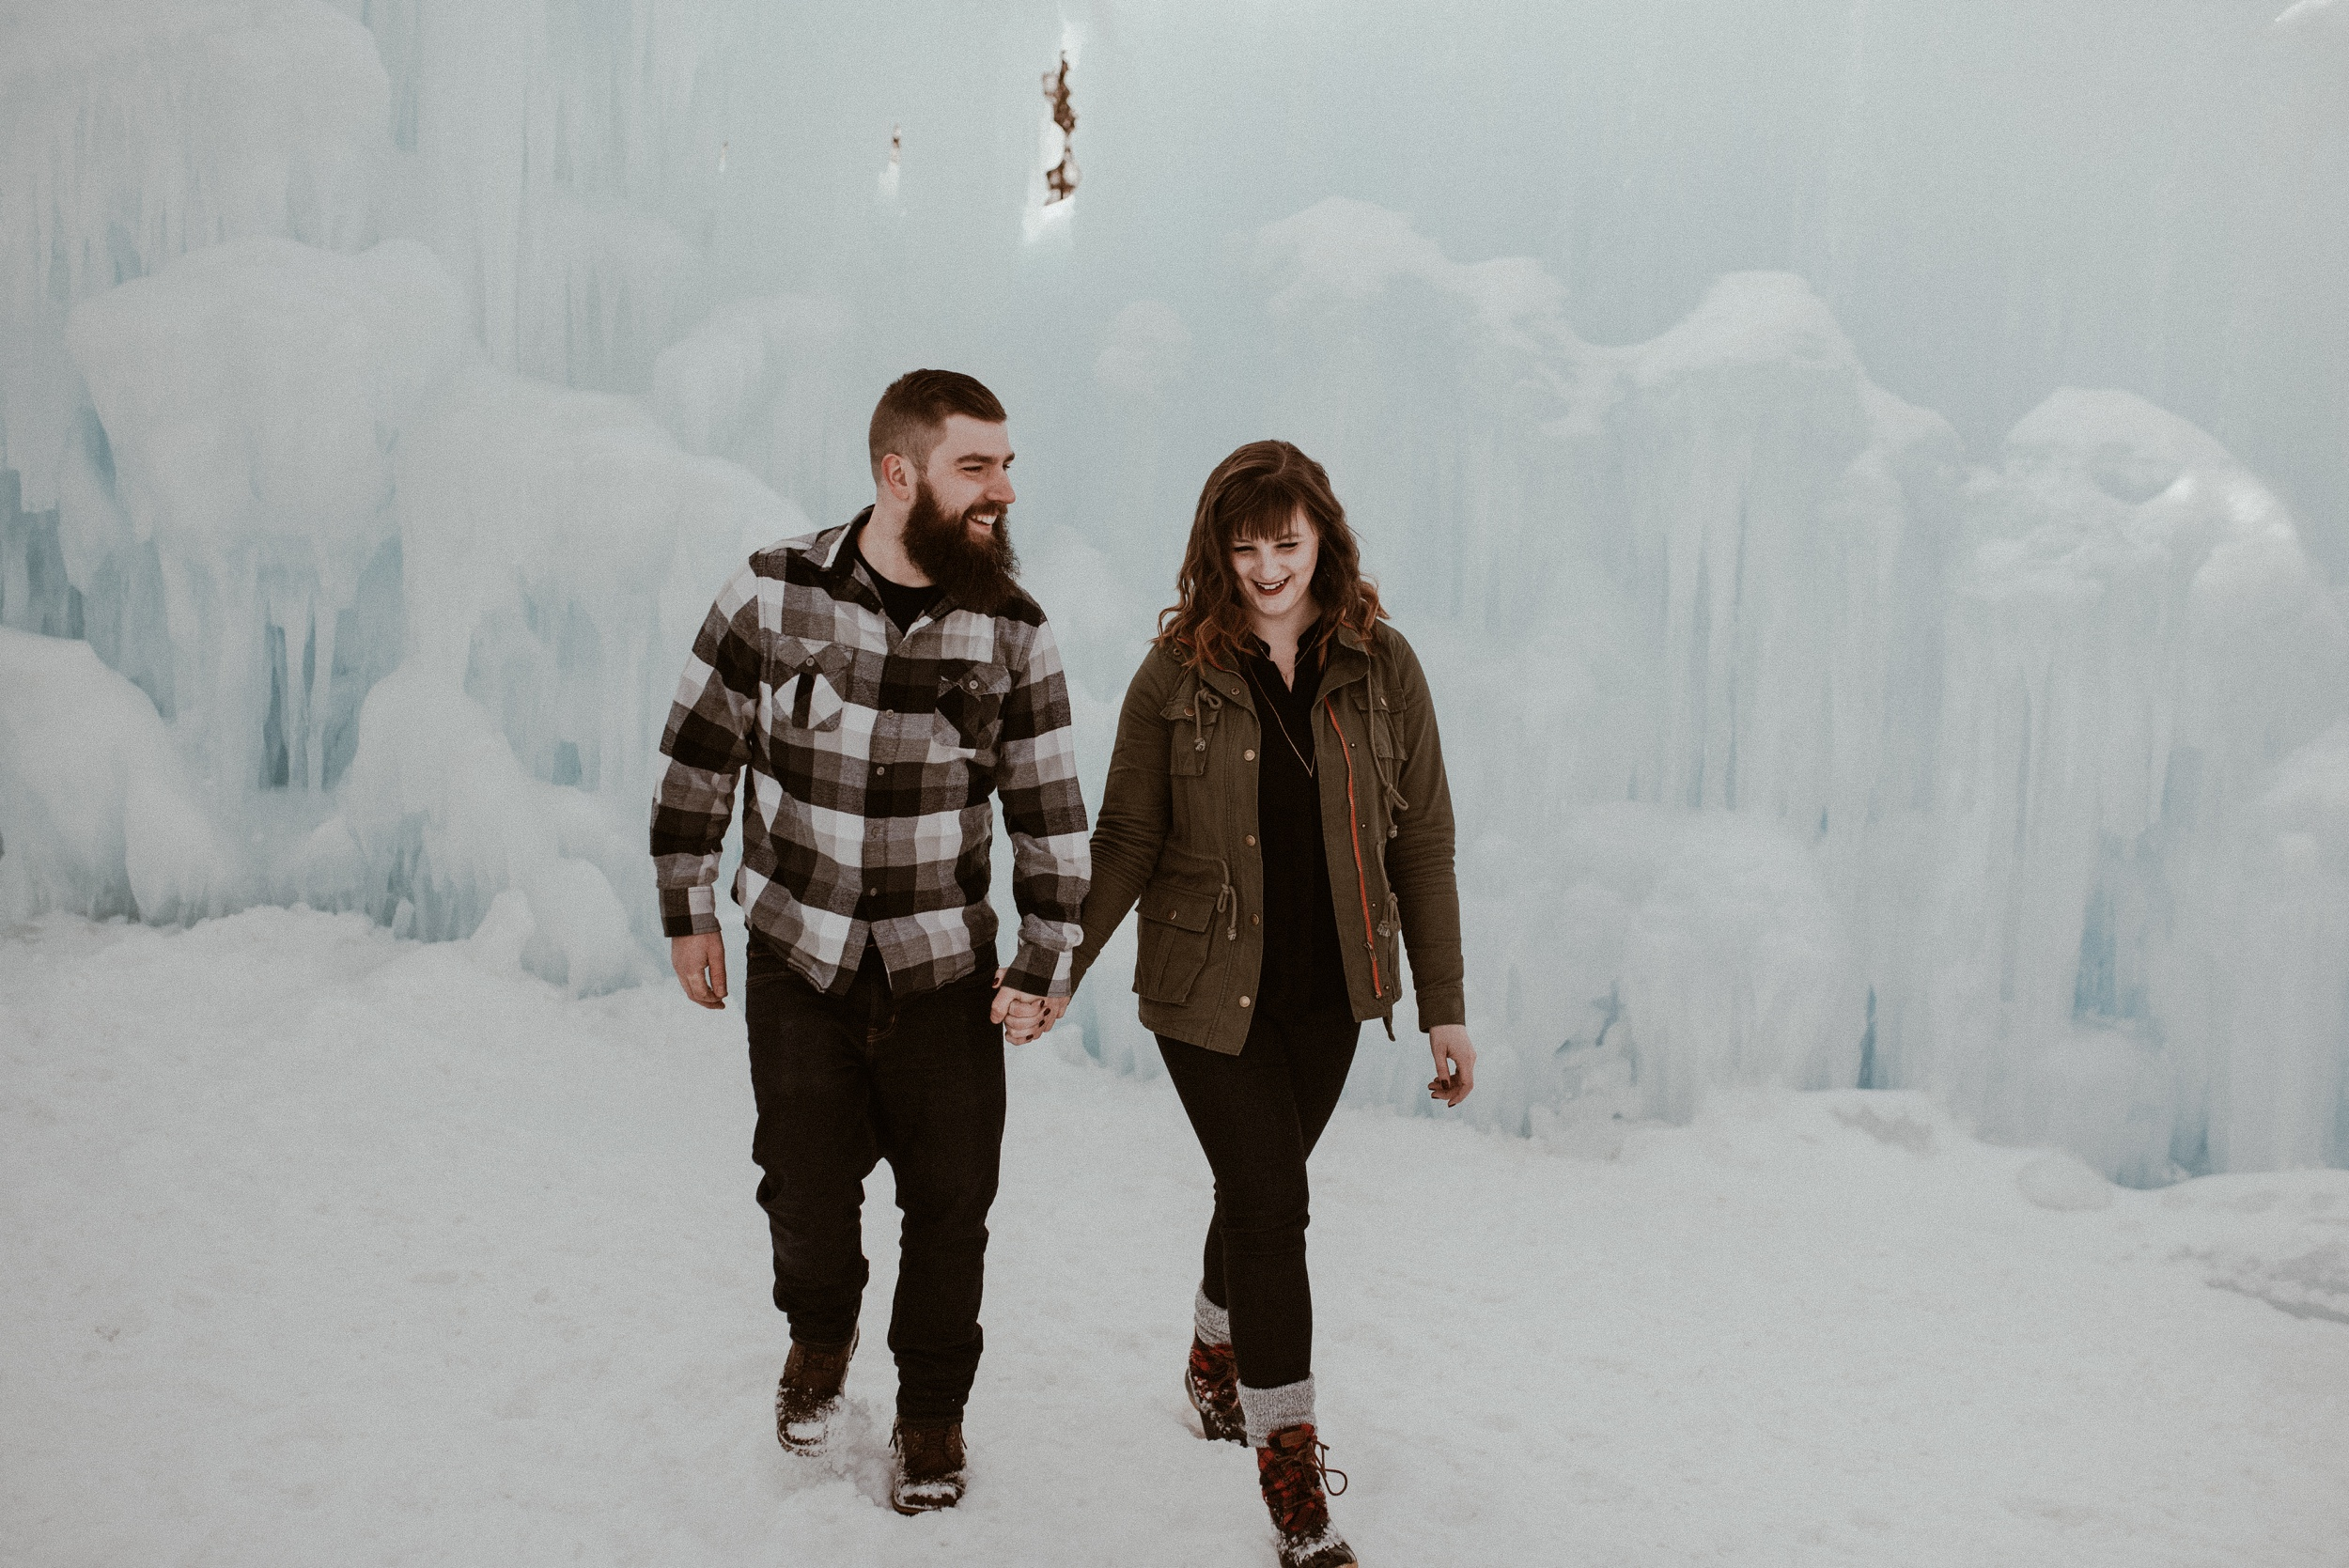 ice-castles-nh-engagement-session-boston-wedding-photographer-vanessa-alves-photography11.jpg